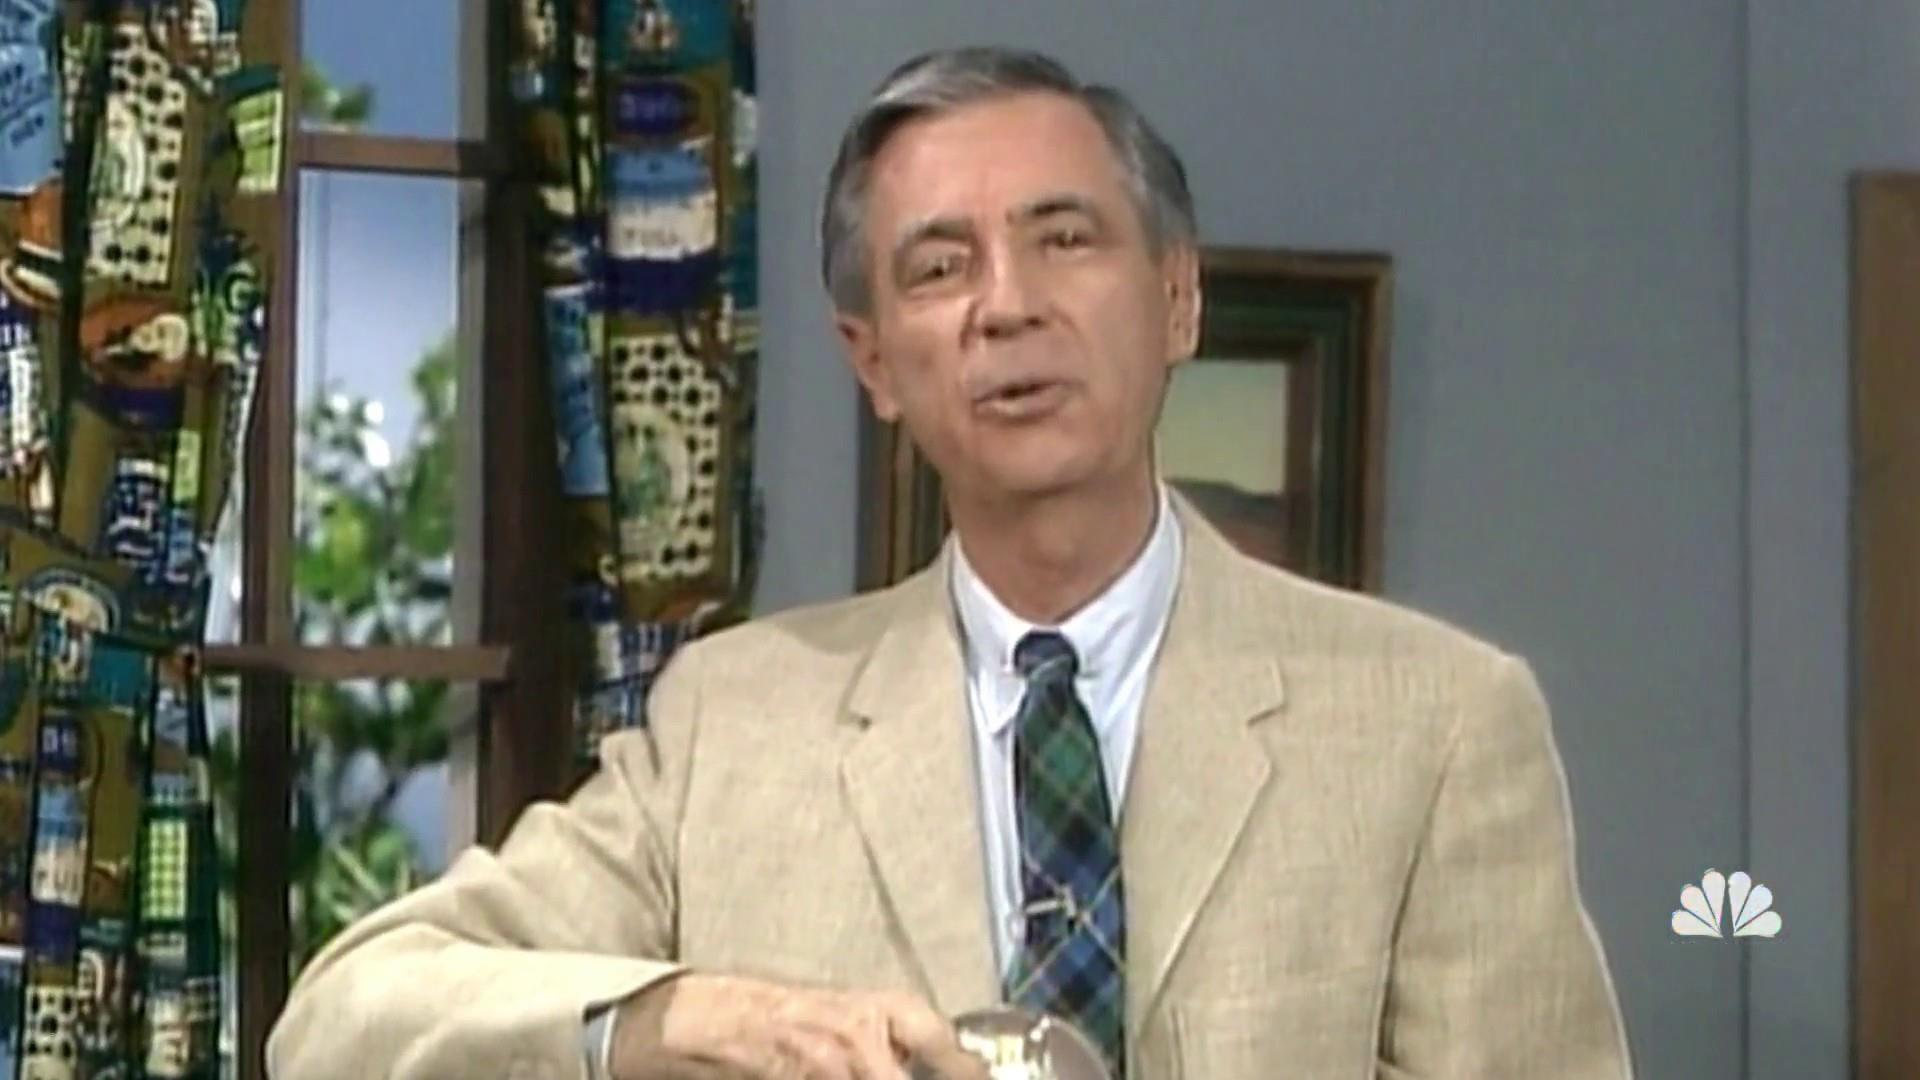 Mister Rogers Neighborhood Turns 50 Nbc News